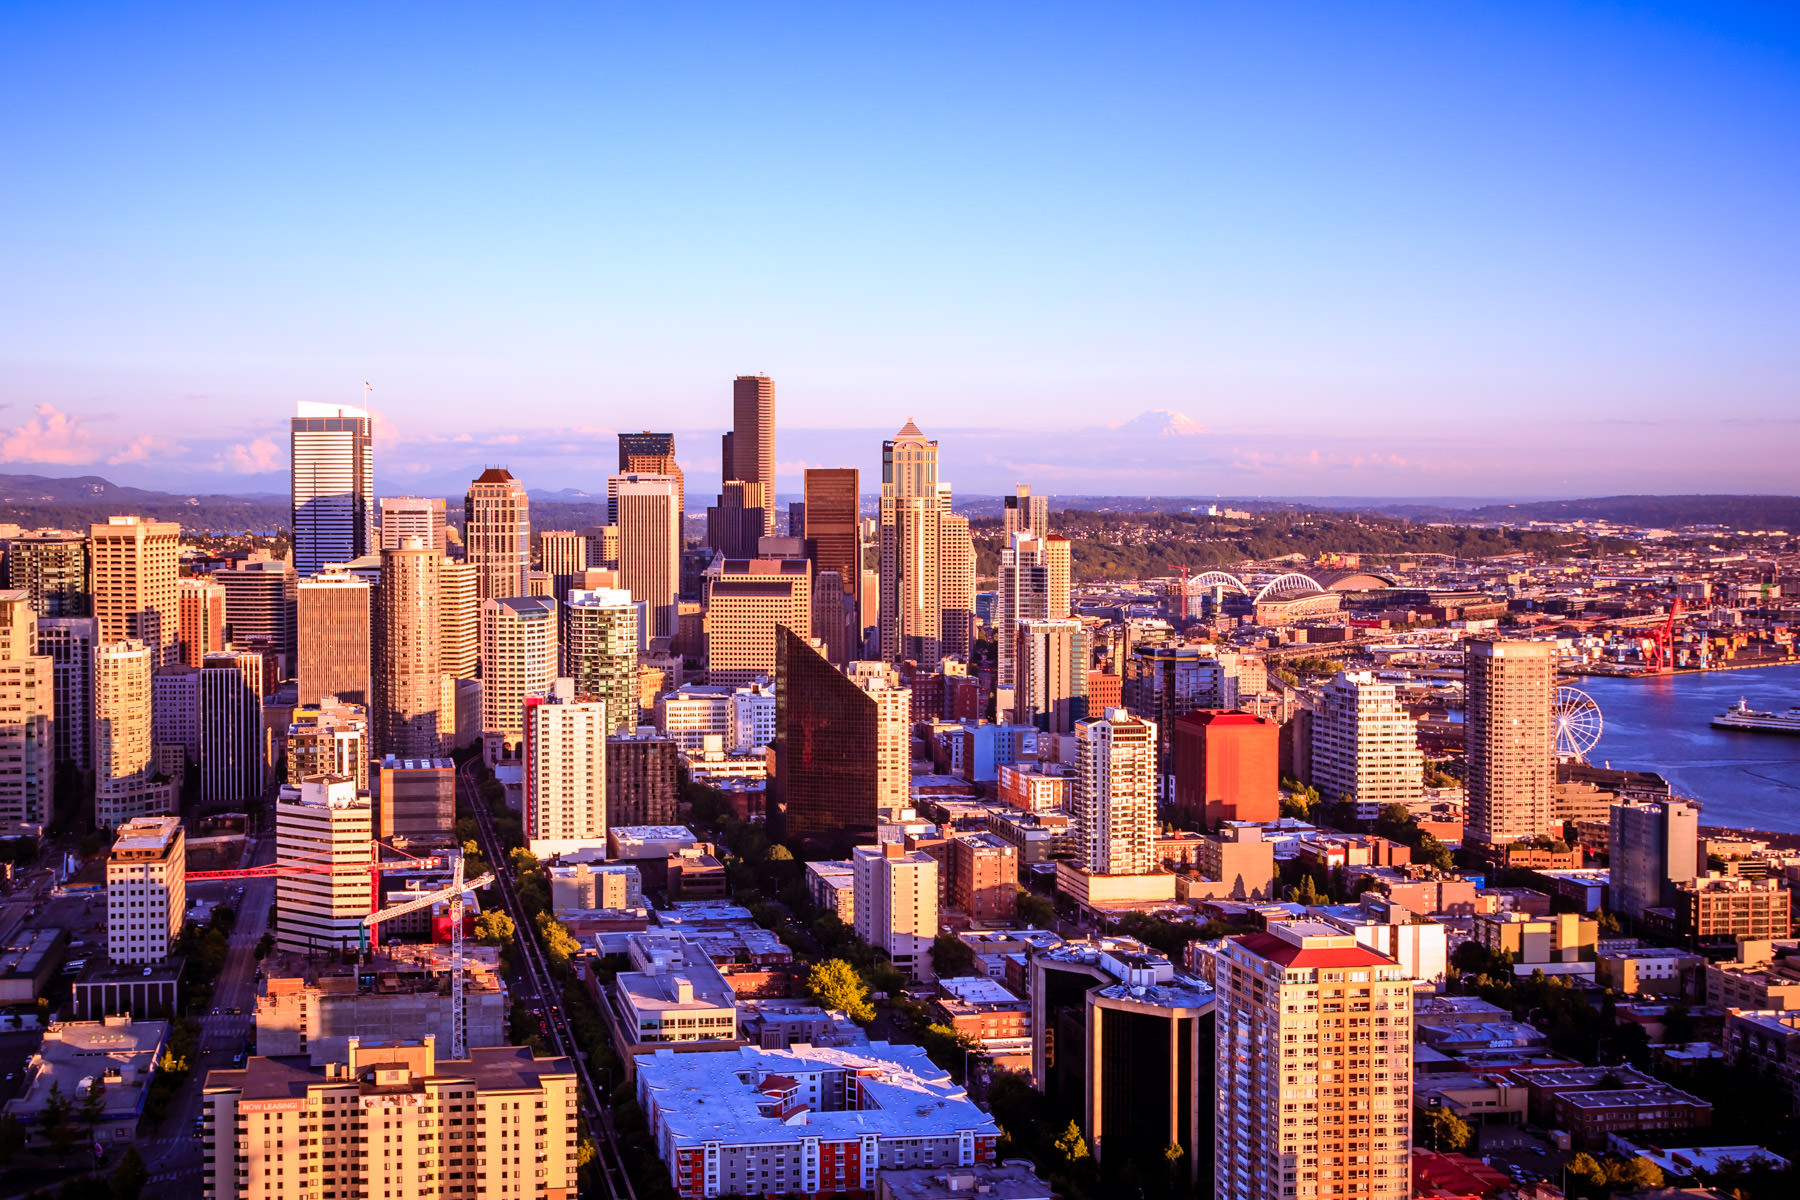 The evening sun illuminates Downtown Seattle, as seen from the Space Needle.